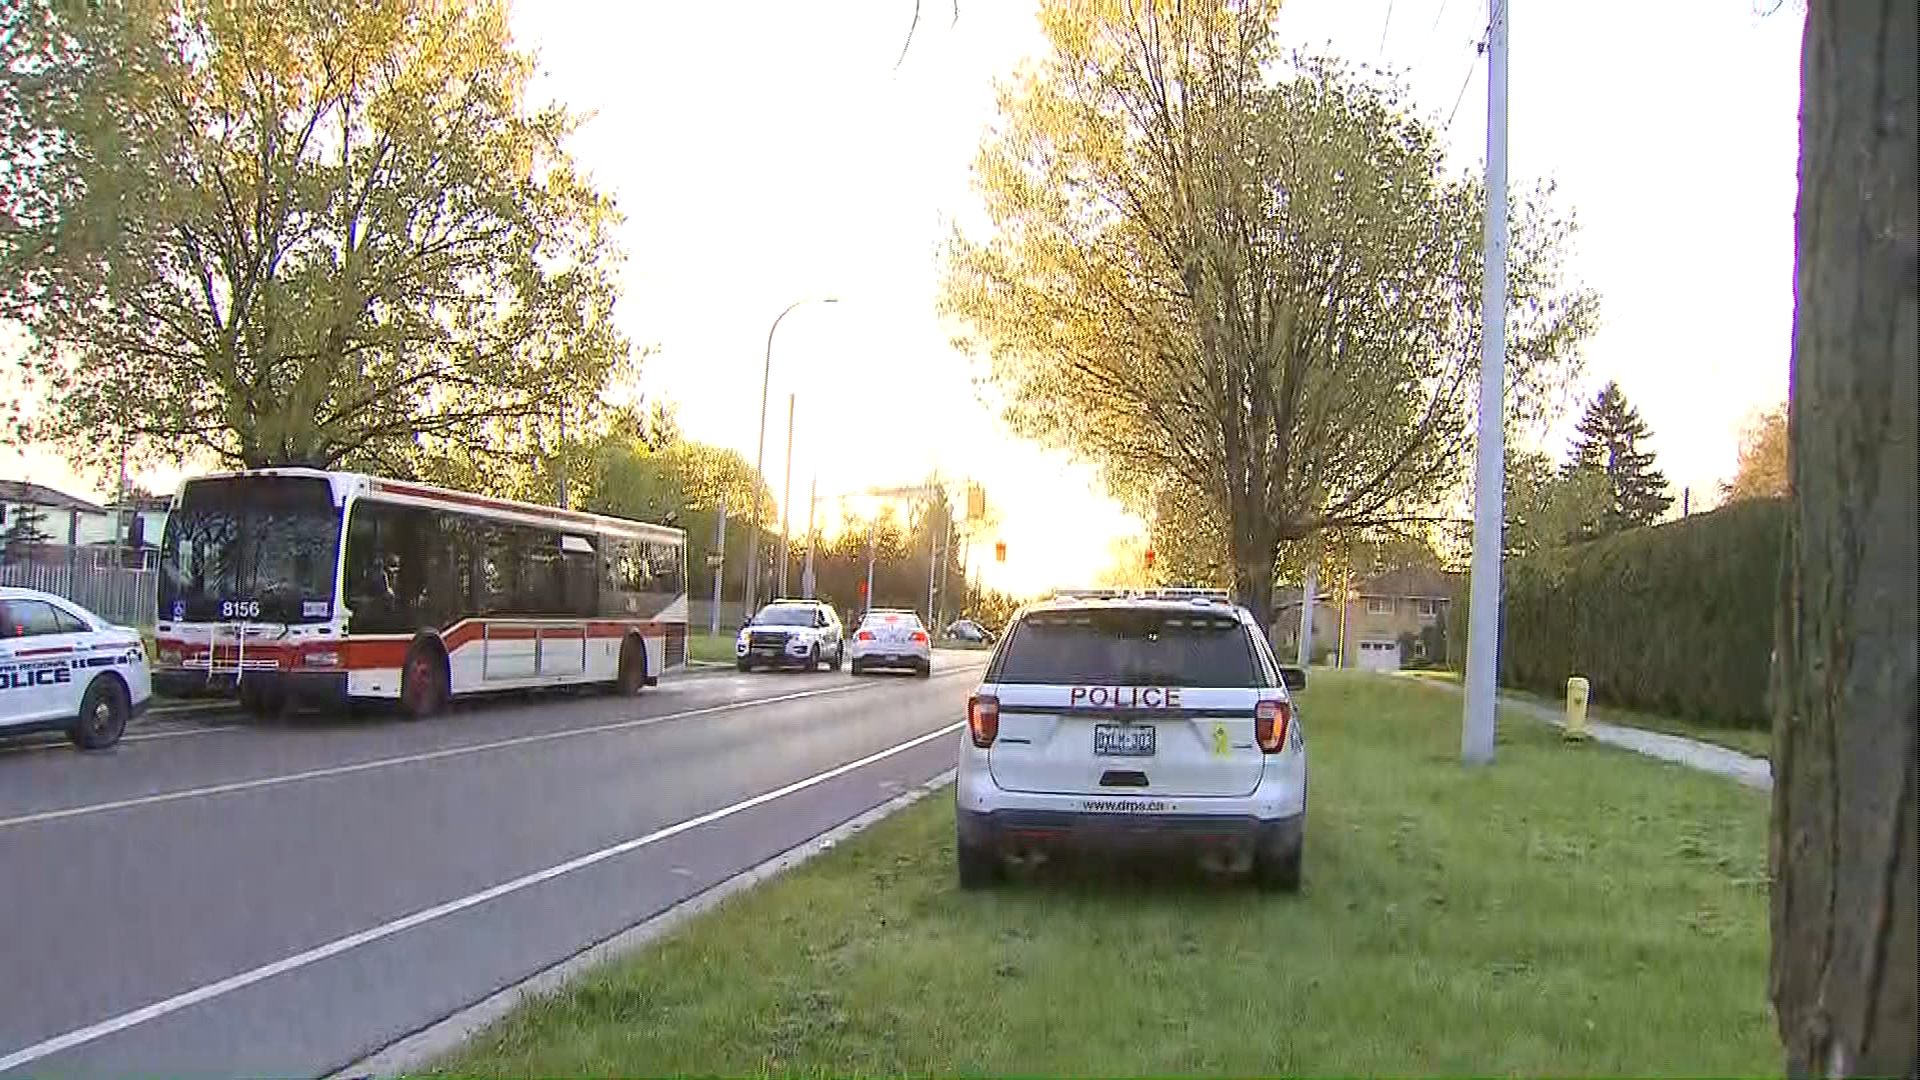 Whitby man charged after TTC bus stolen from garage